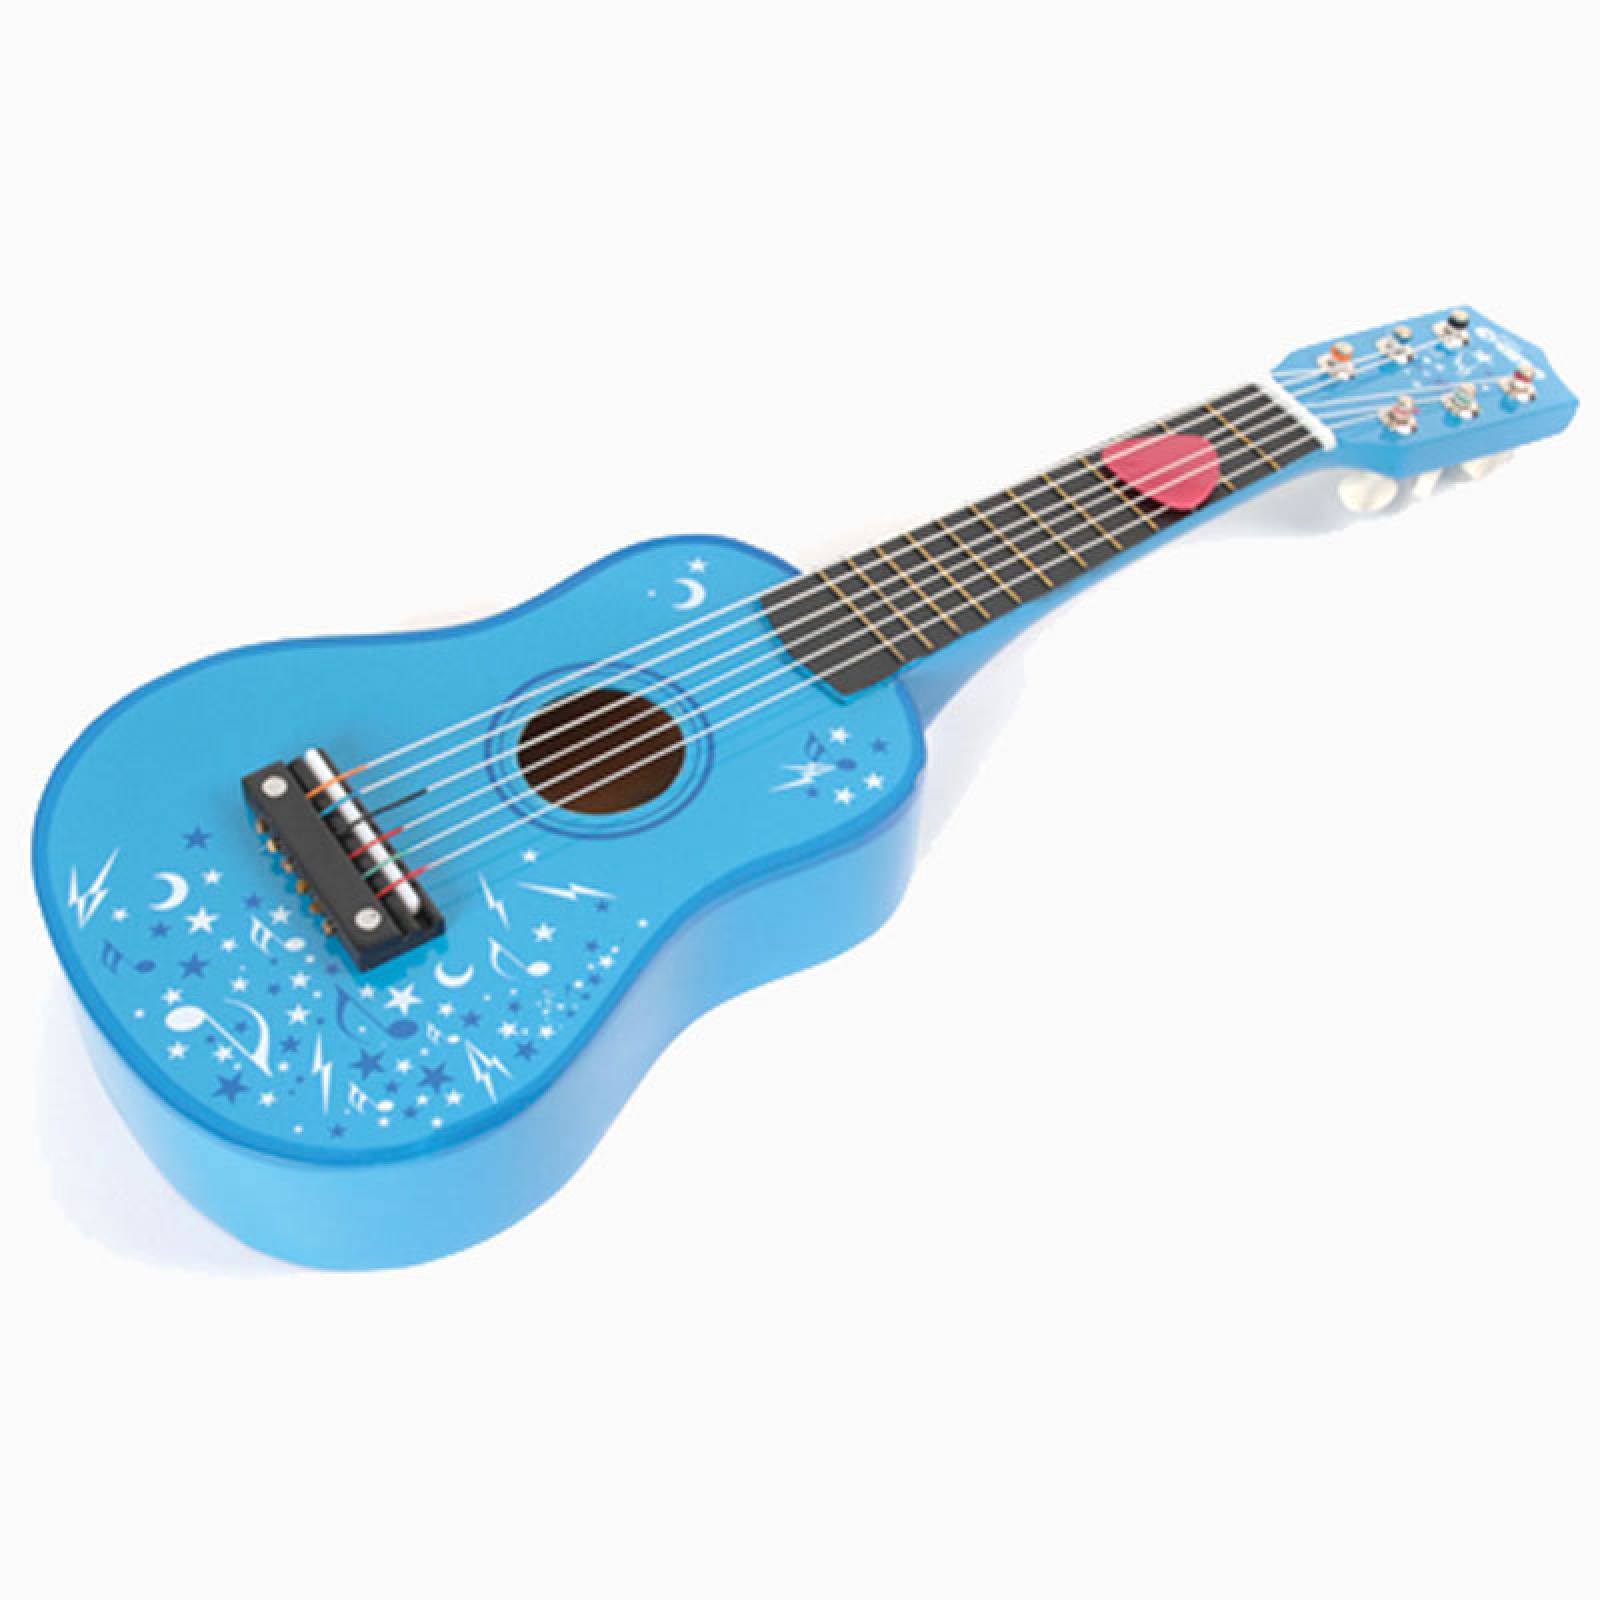 Children's Wooden Guitar In Blue WIth Stars 3+ thumbnails